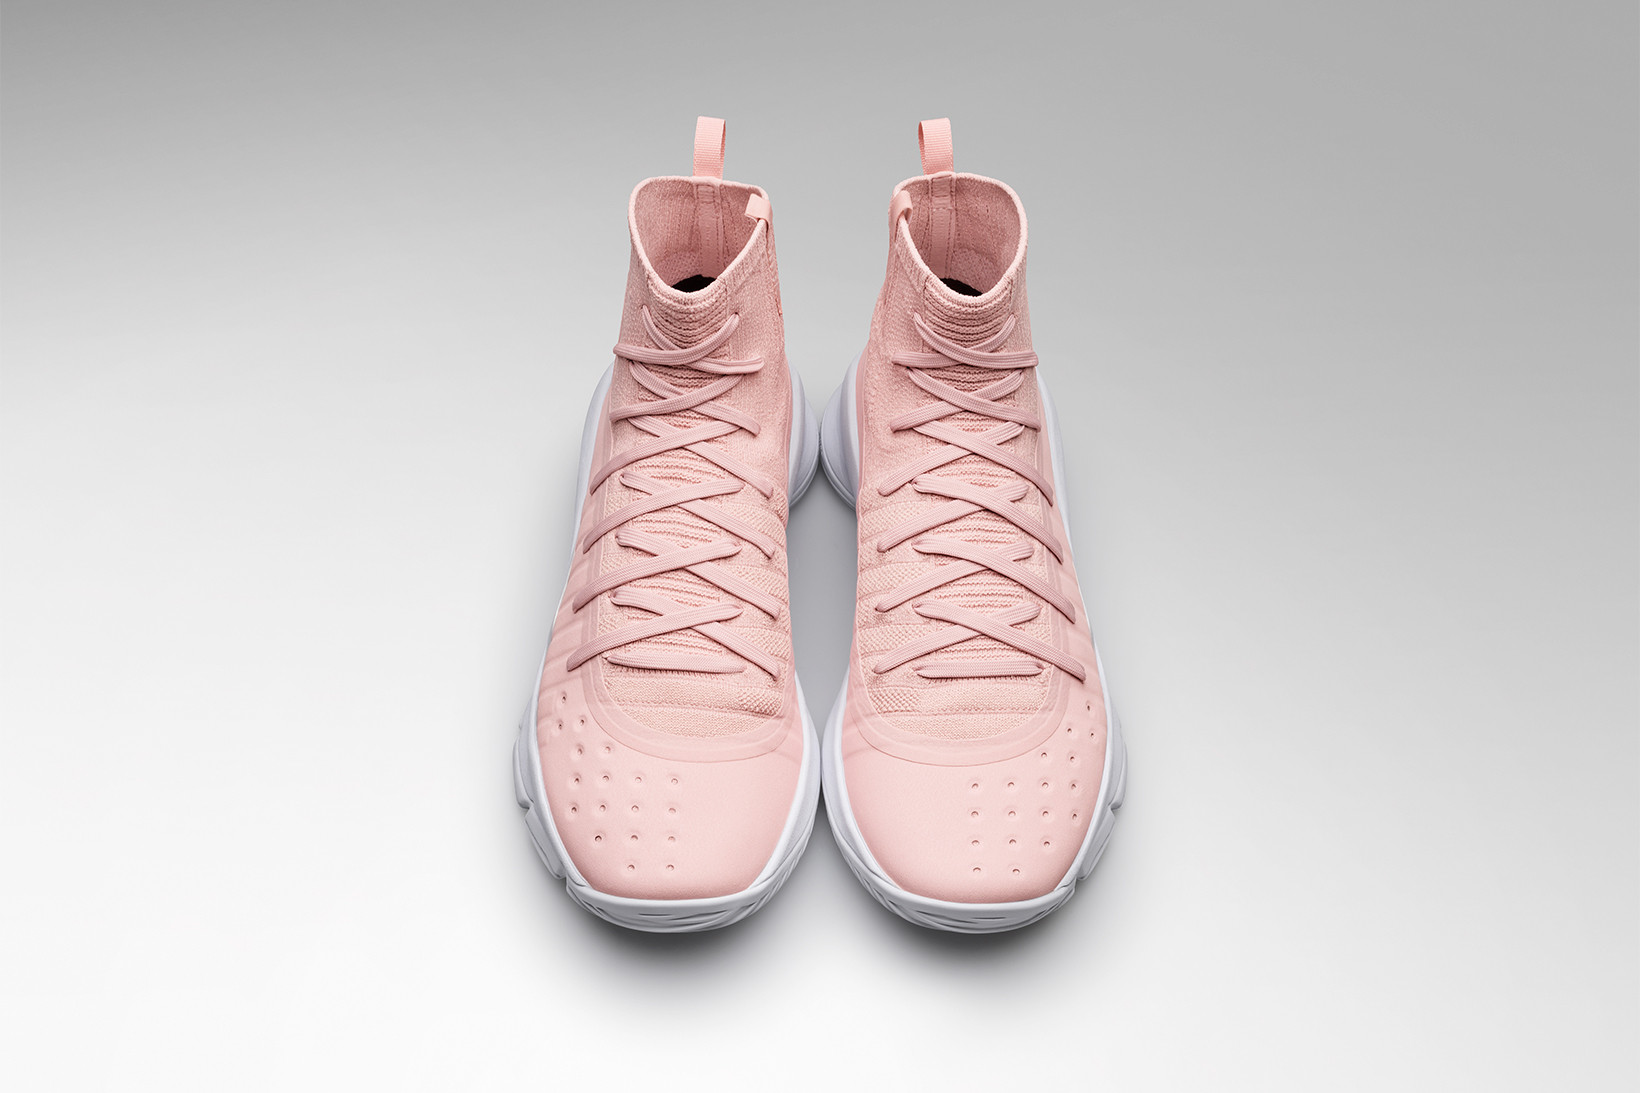 Under Armour Curry 4 Flushed Pink for